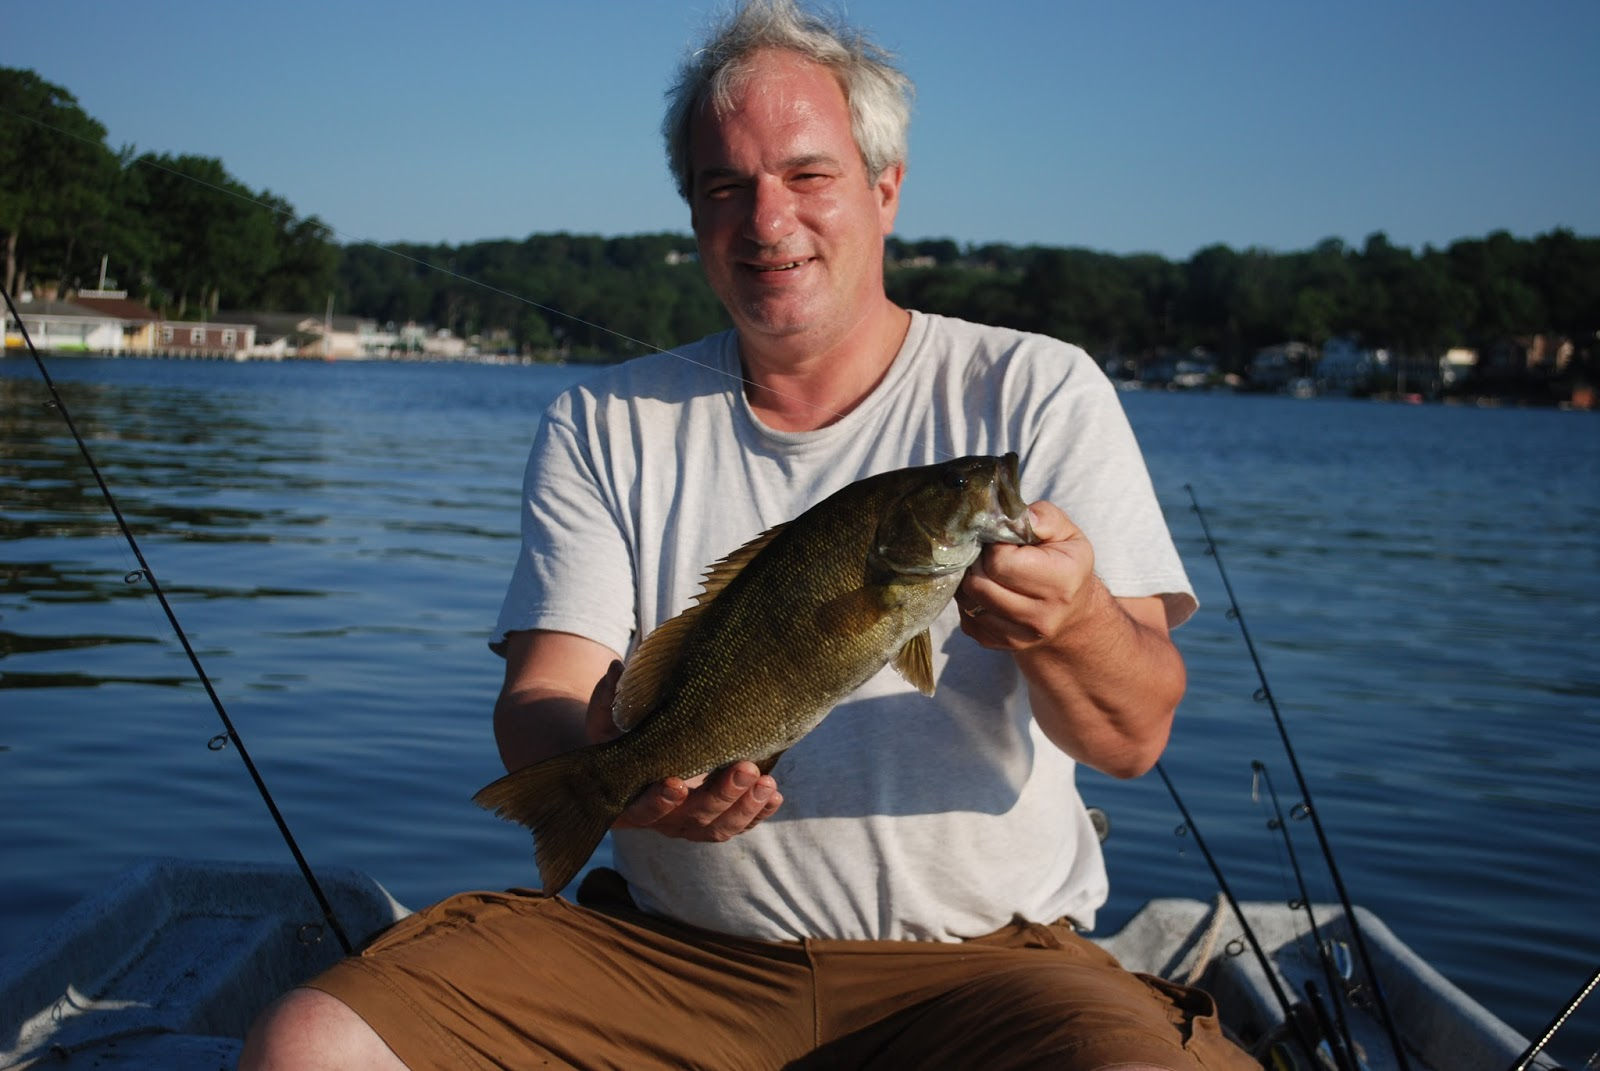 Litton 39 s fishing lines lake hopatcong smallmouth bass and for Best fishing line for walleye